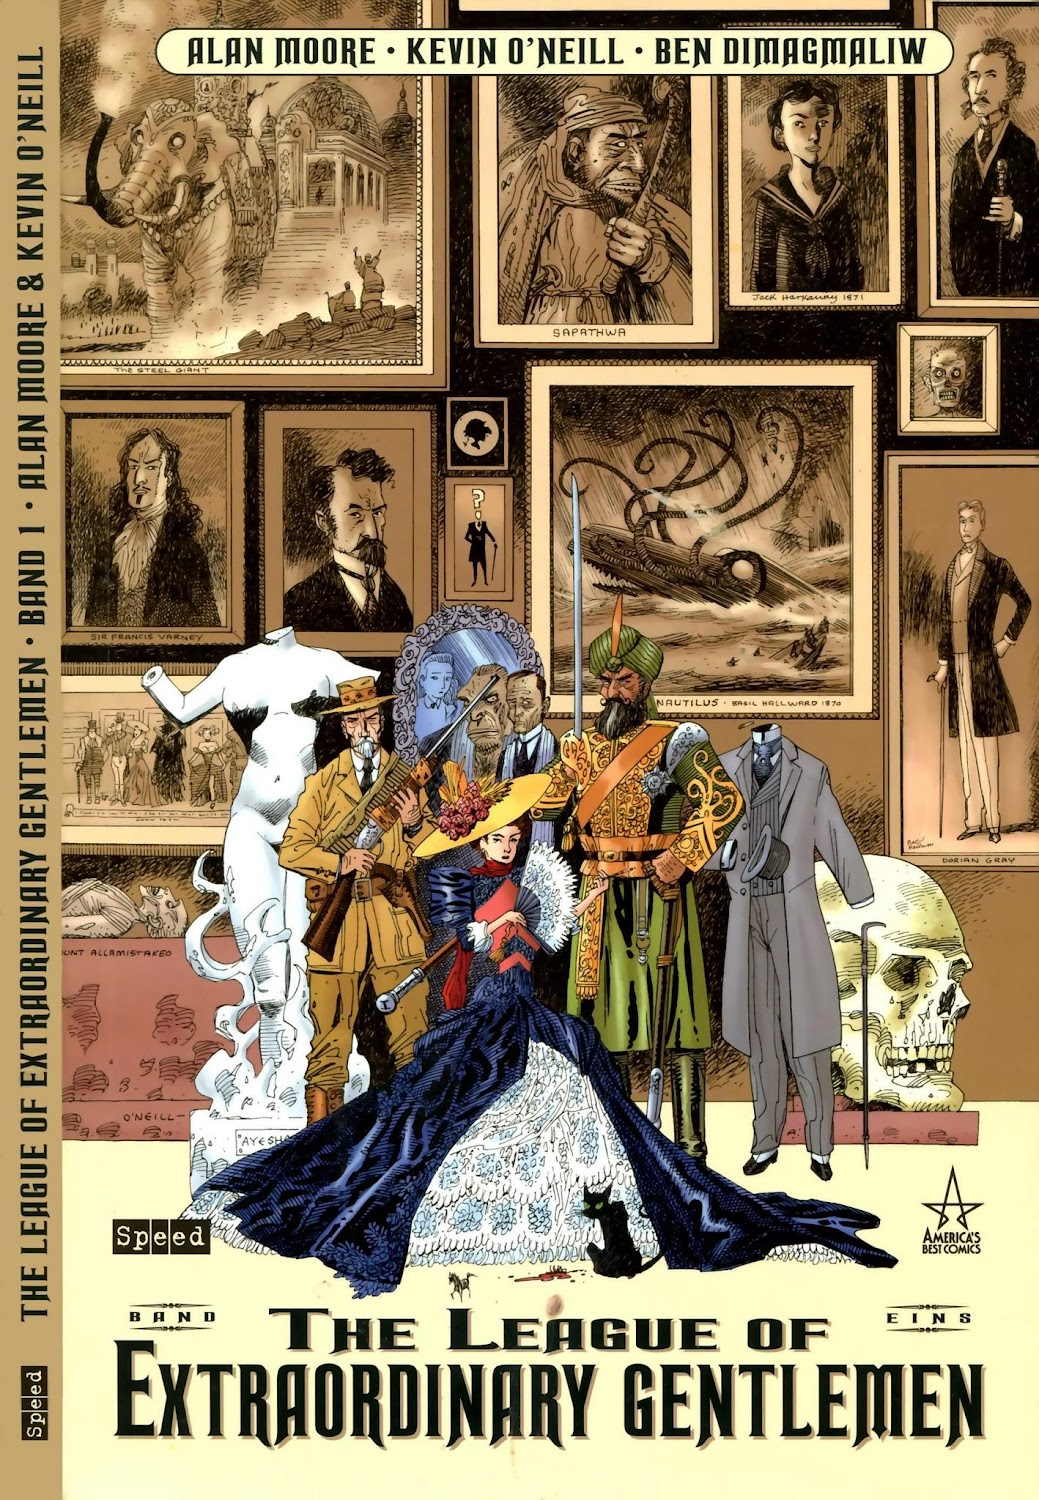 The League of Extraordinary Gentlemen (2003) - komplett